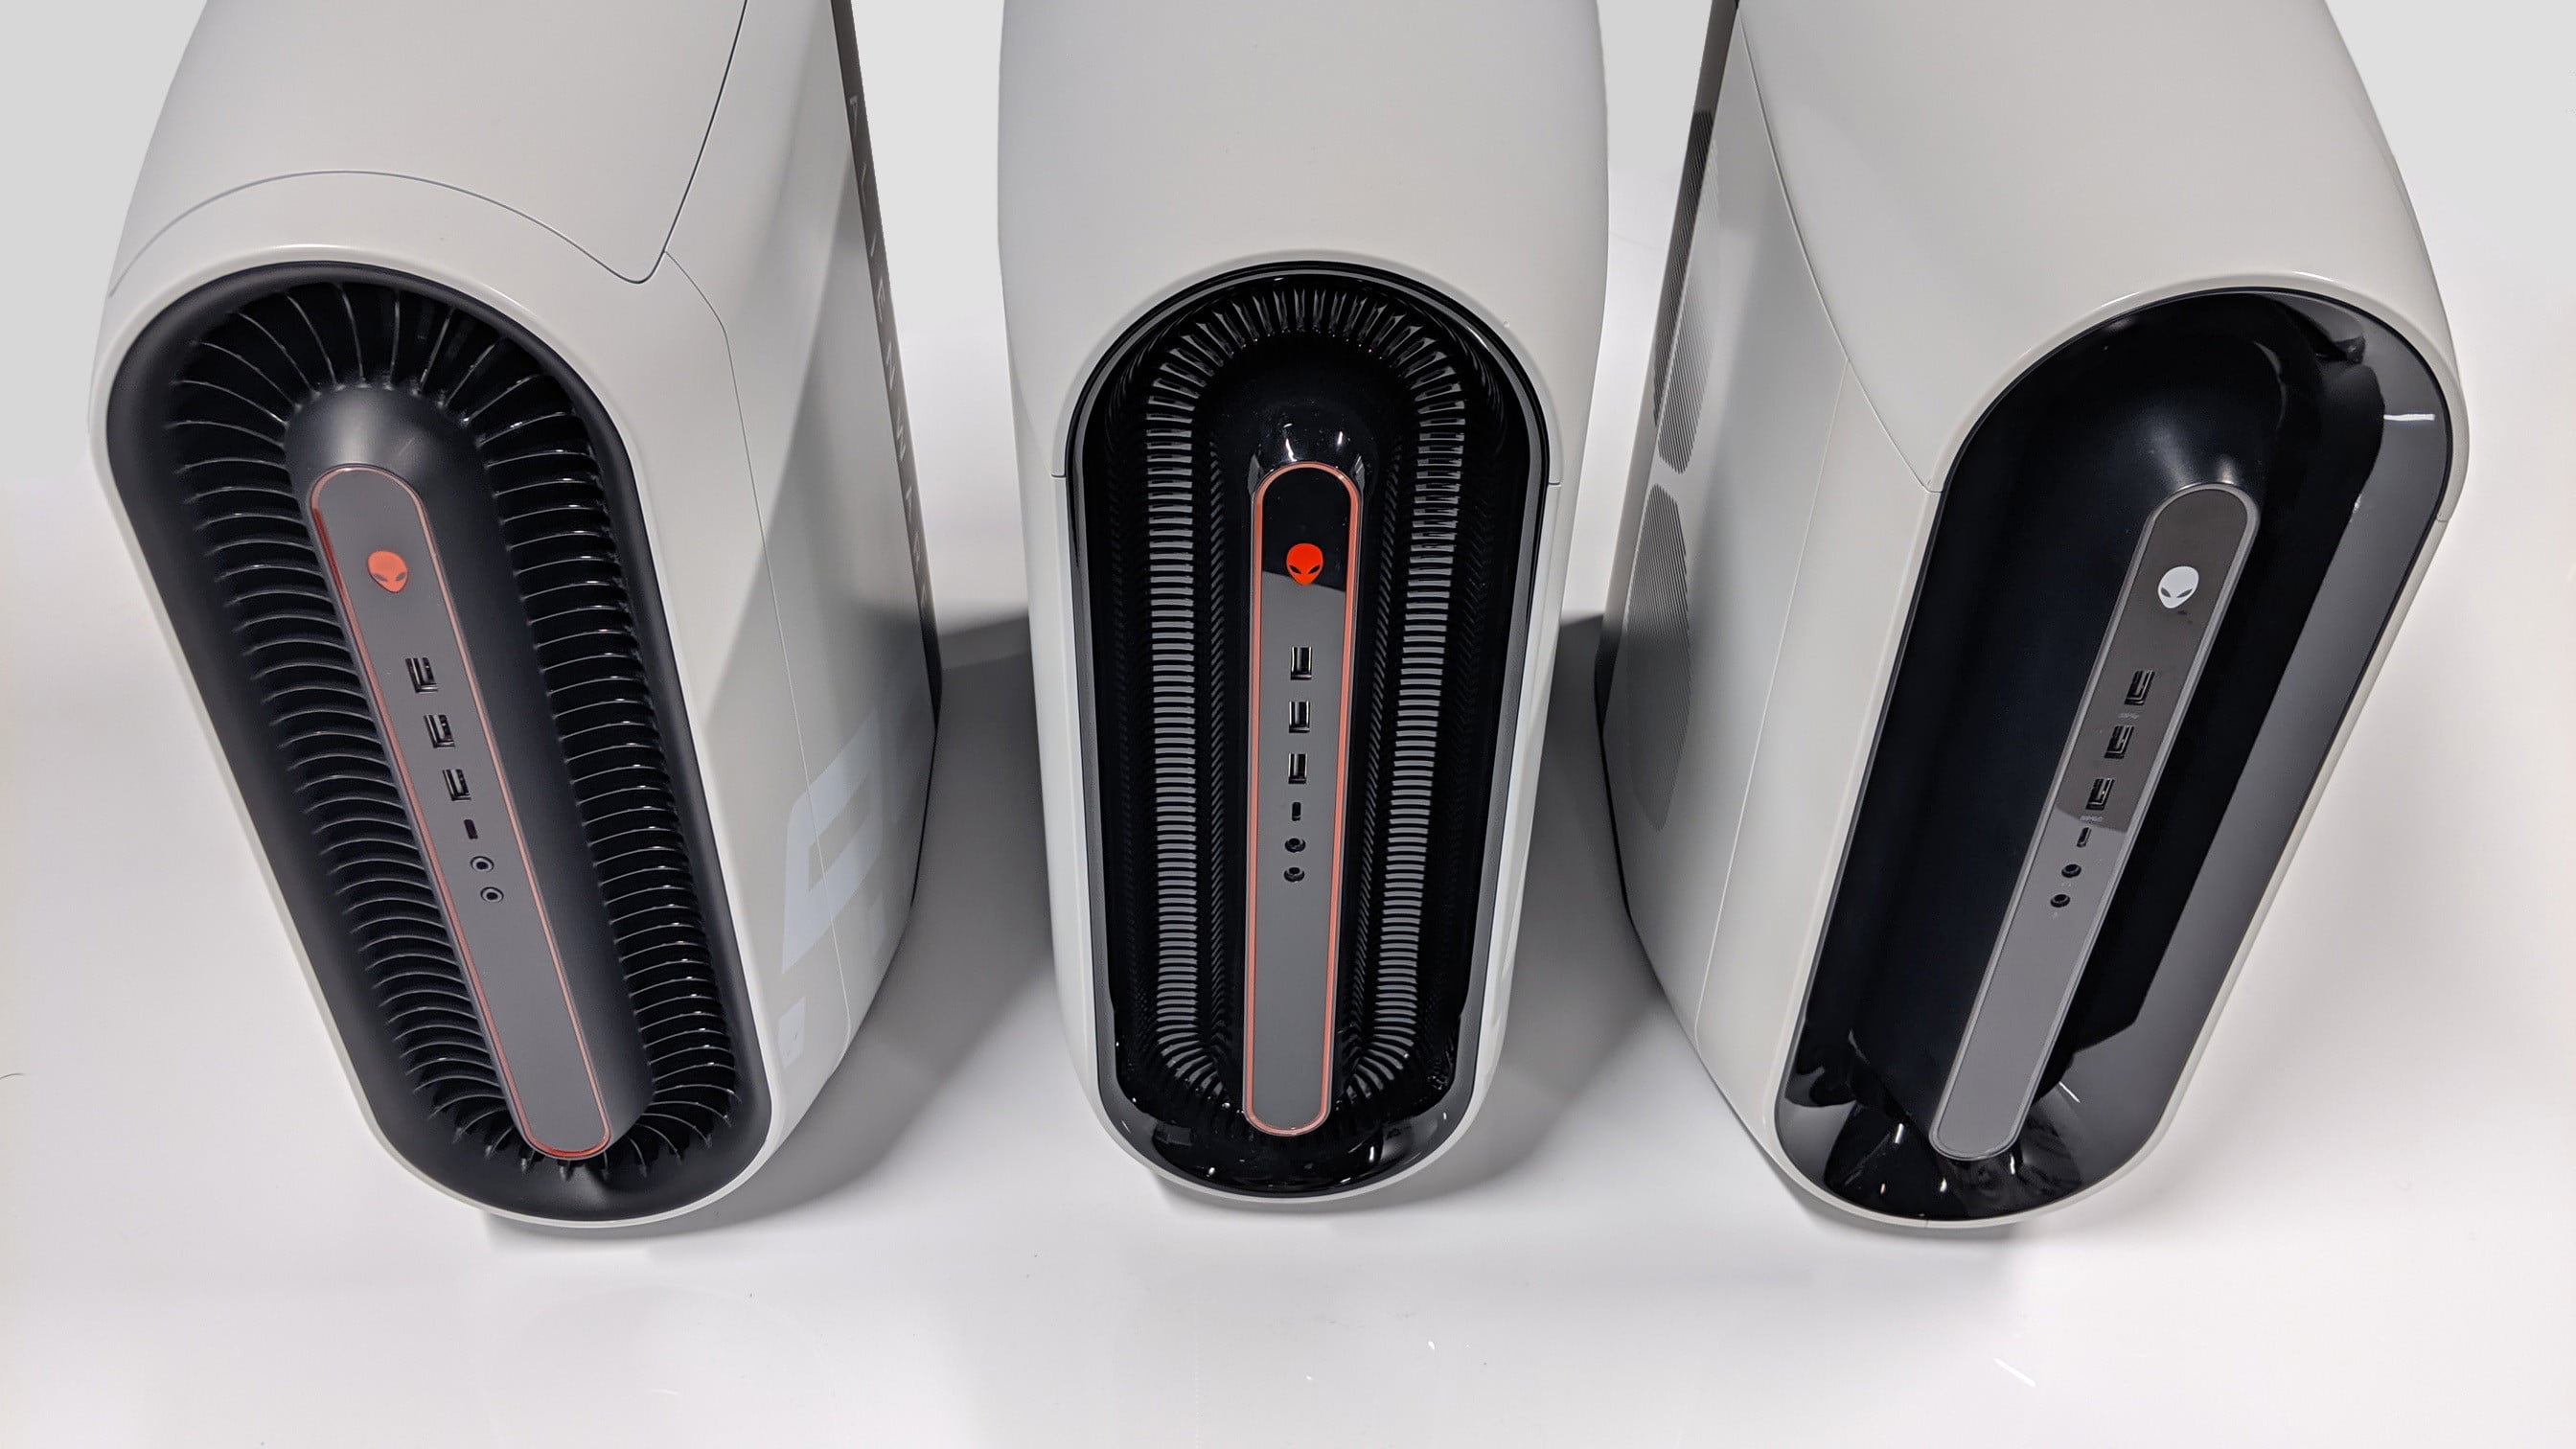 Exclusive: How Alienware dared to ditch black, boxy designs for something radical